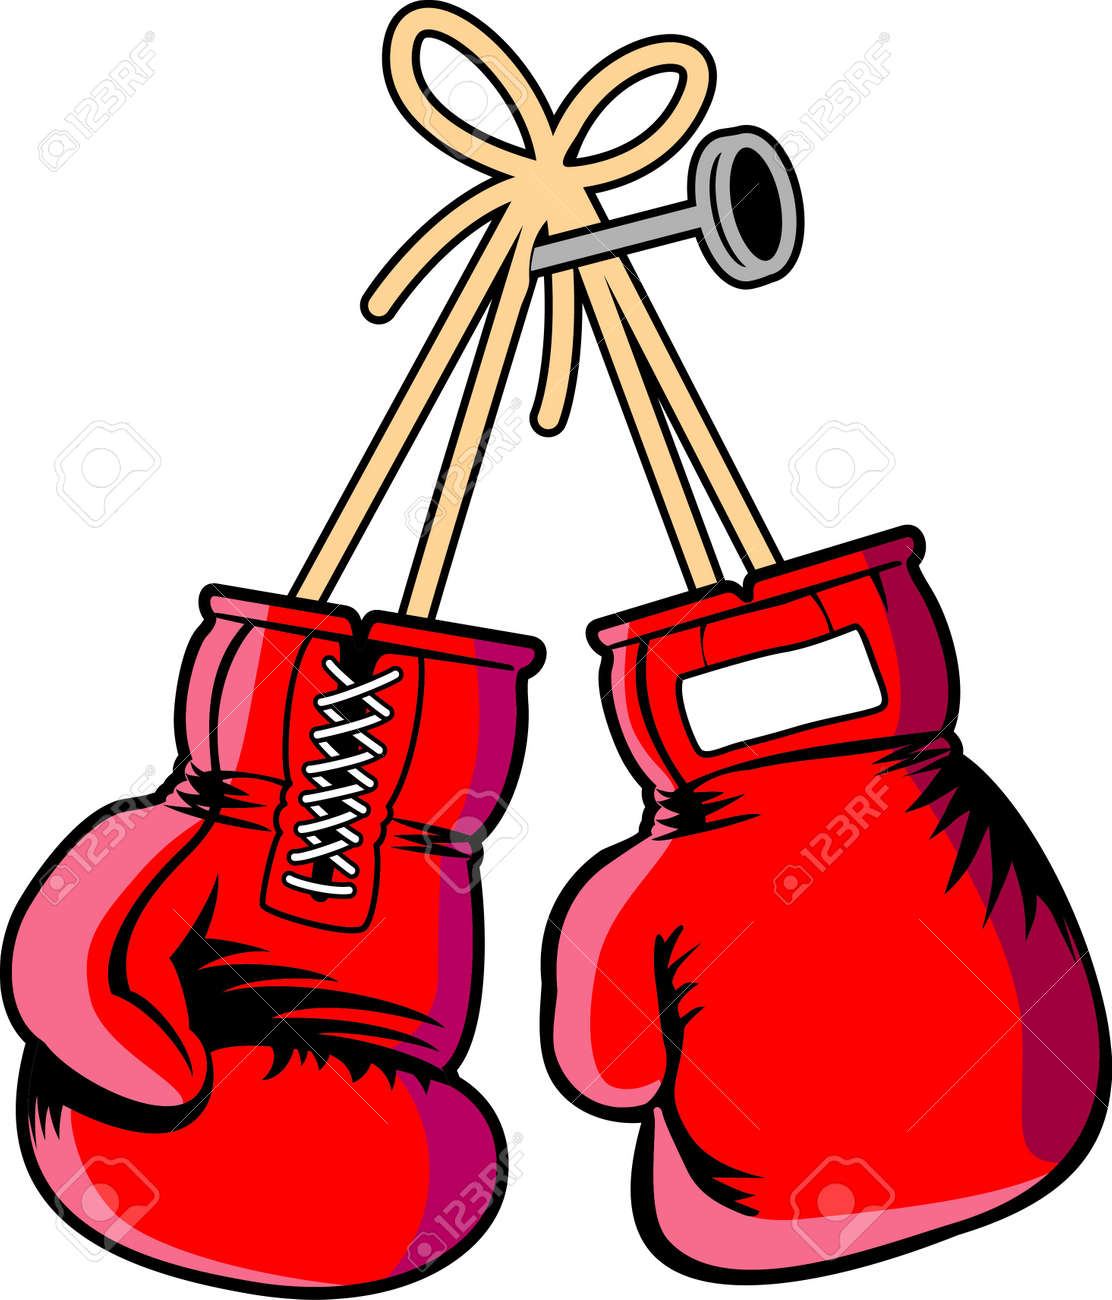 34 485 boxing stock vector illustration and royalty free boxing clipart rh 123rf com boxing clipart free boxing clipart png